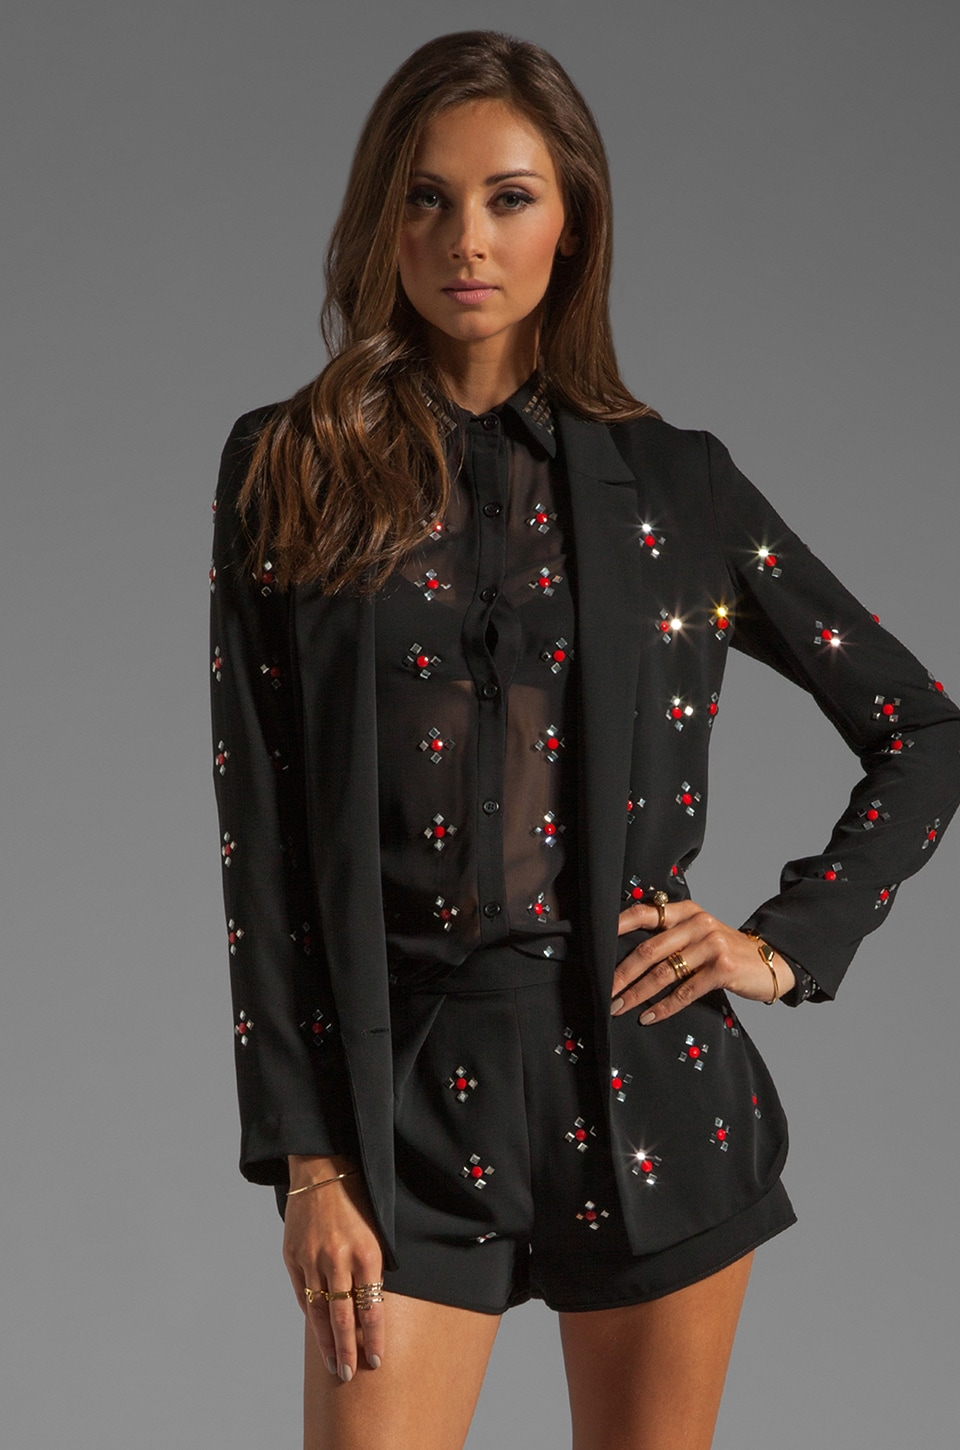 Clover Canyon Rhinestone Soft Suiting Jacket in Black